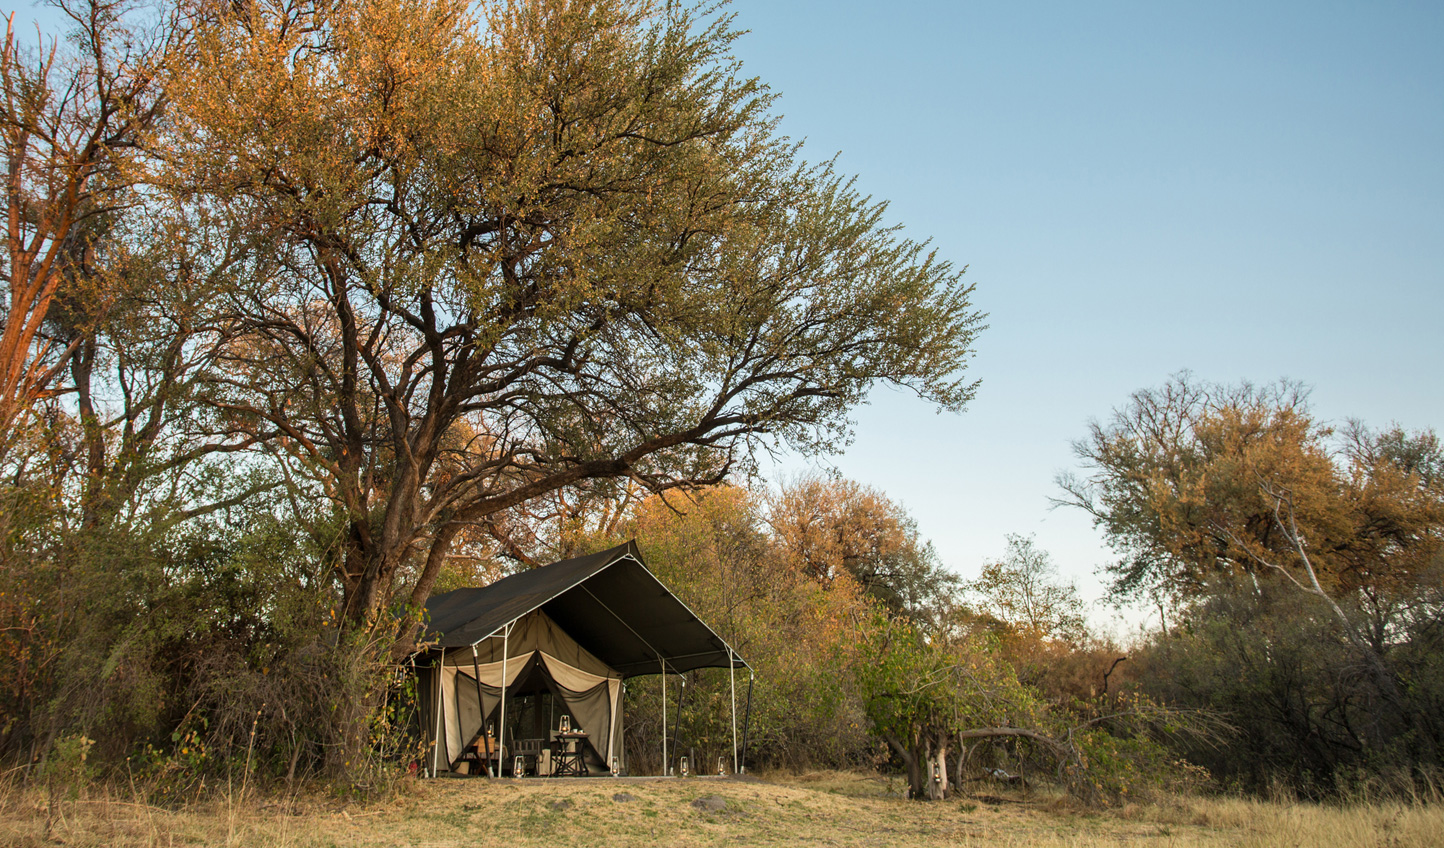 Your Machaba home nestled under a canopy of trees